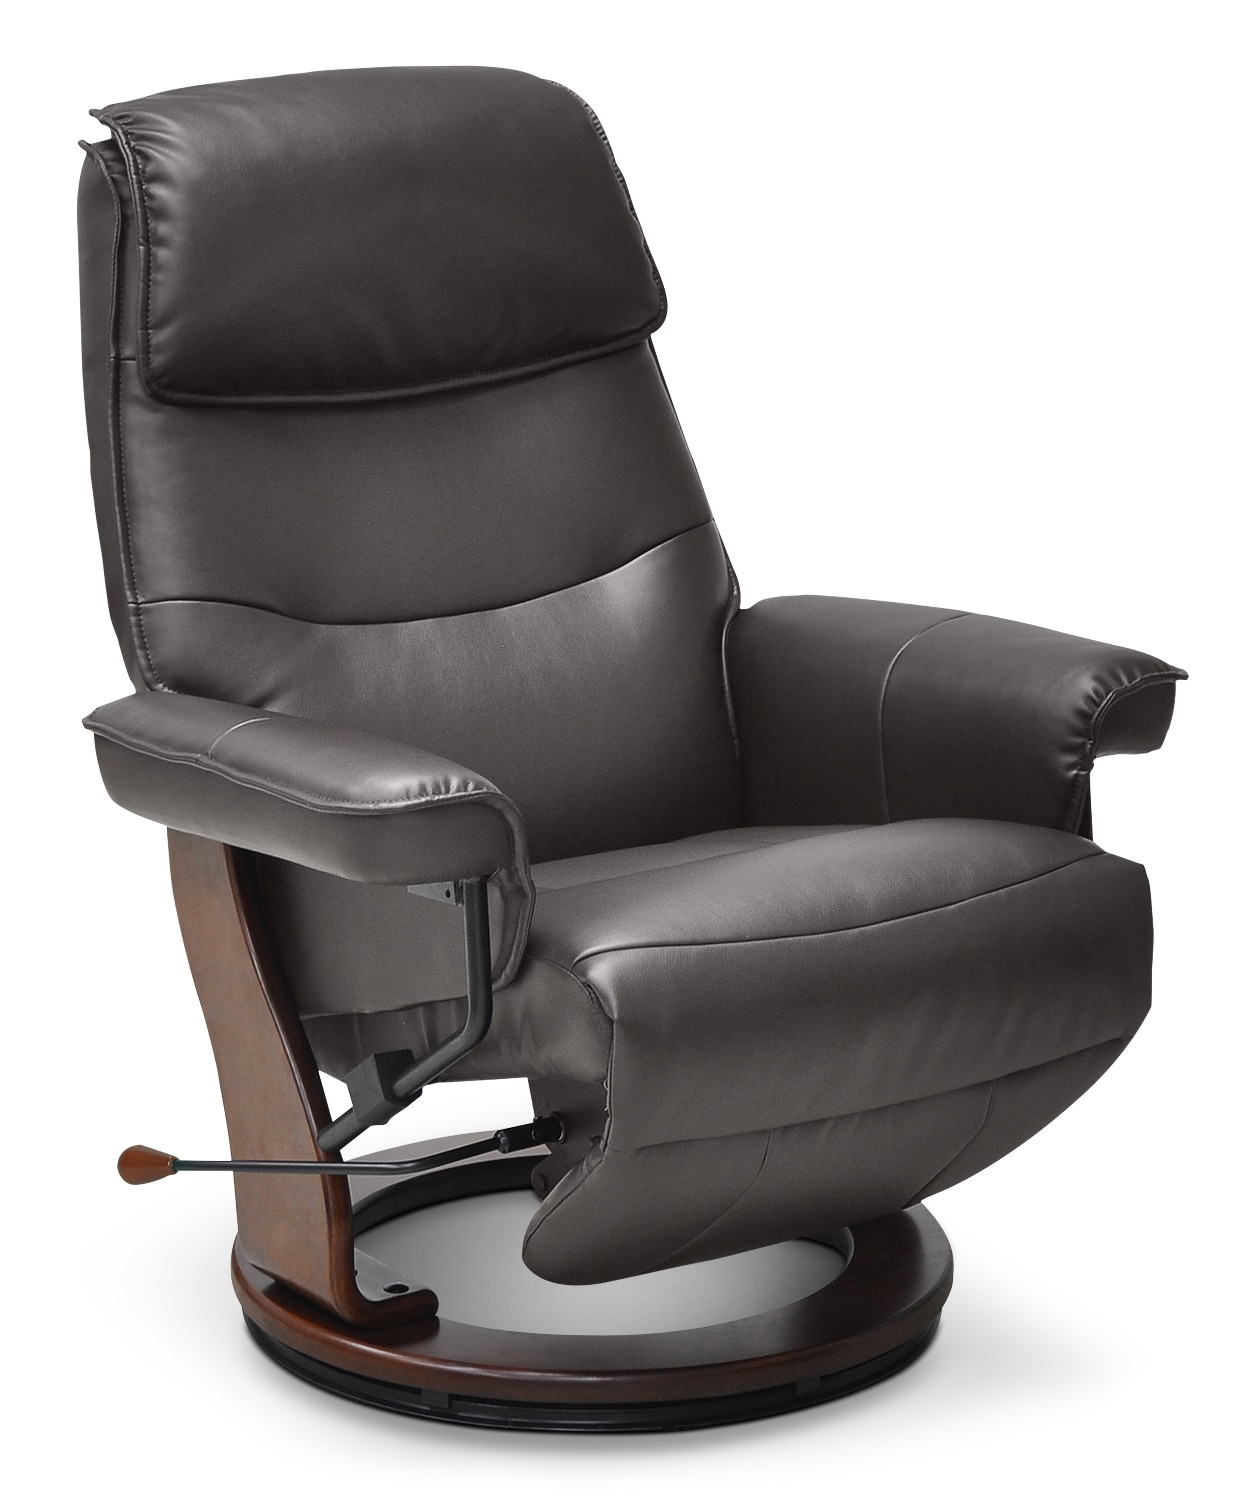 Accent Chairs Clearance Boyd Faux Leather Reclining Chair – Brown | United ...